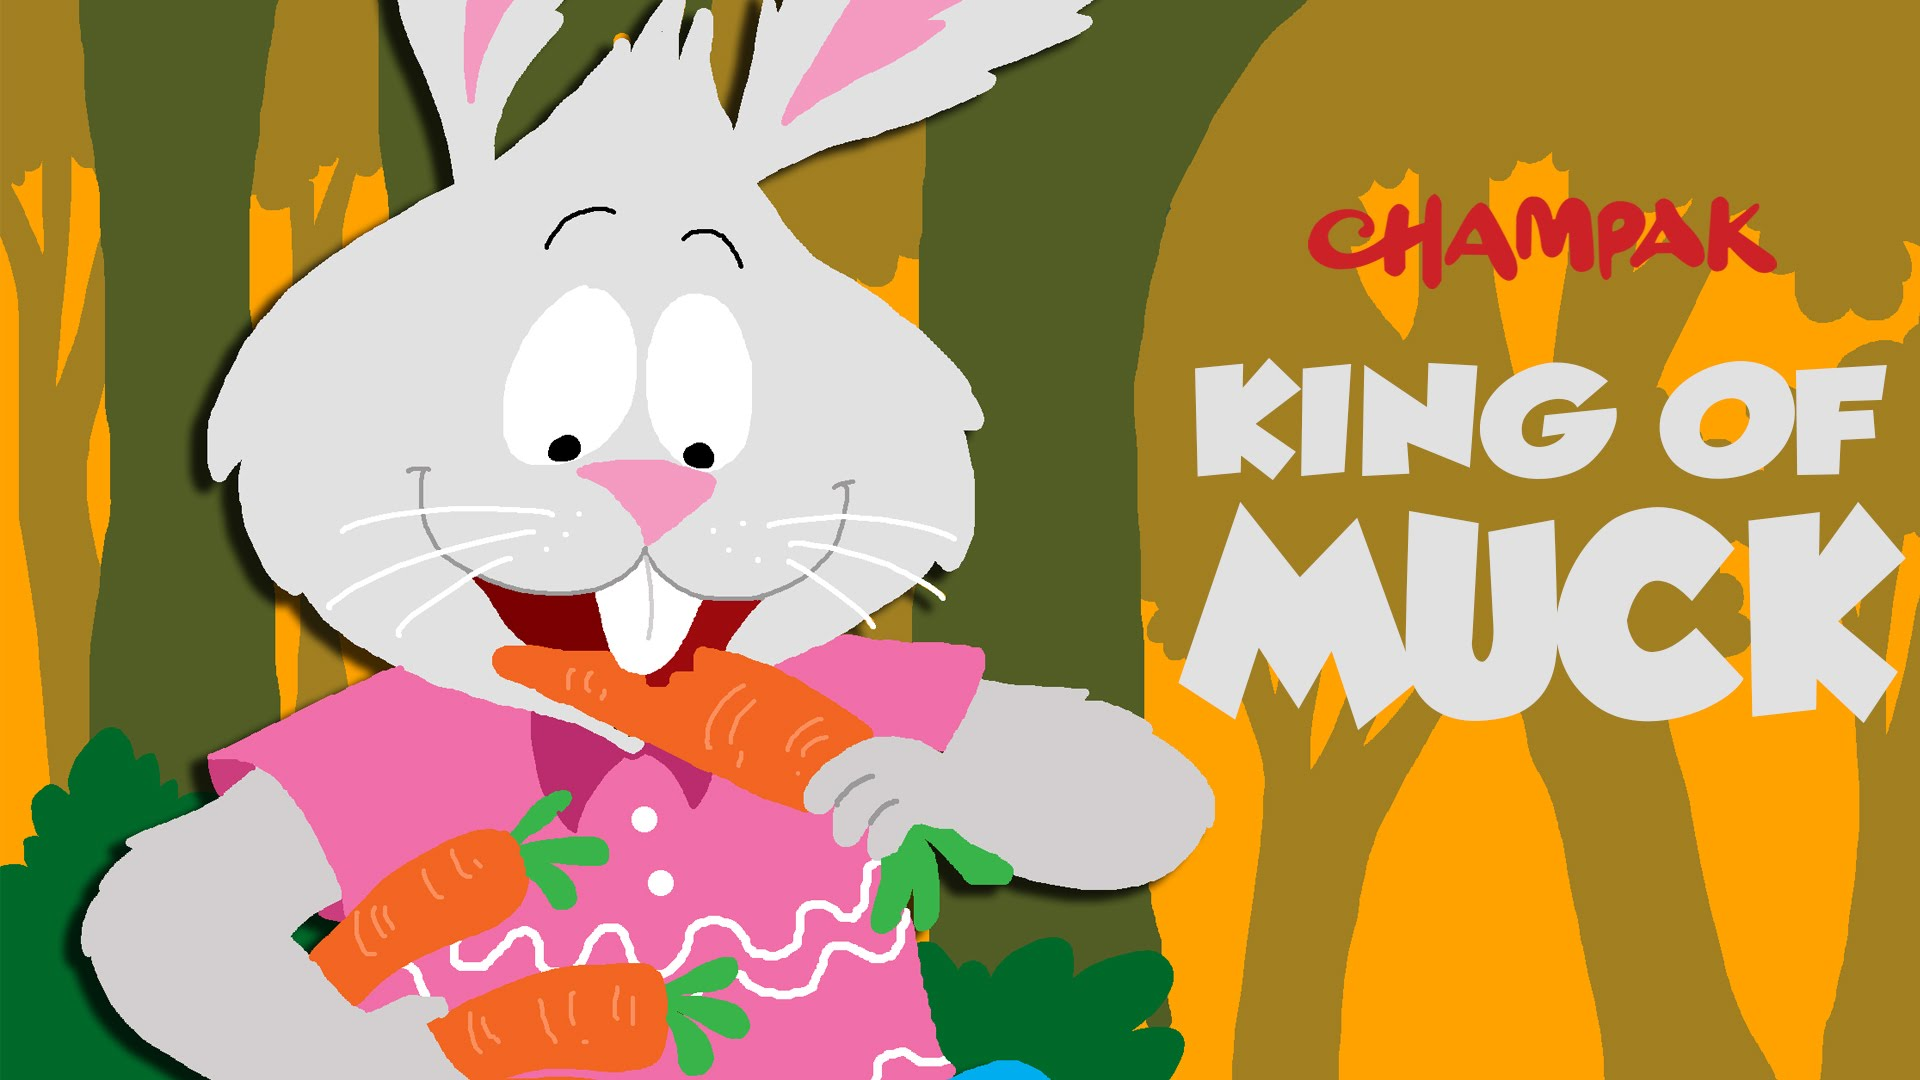 King of Muck.